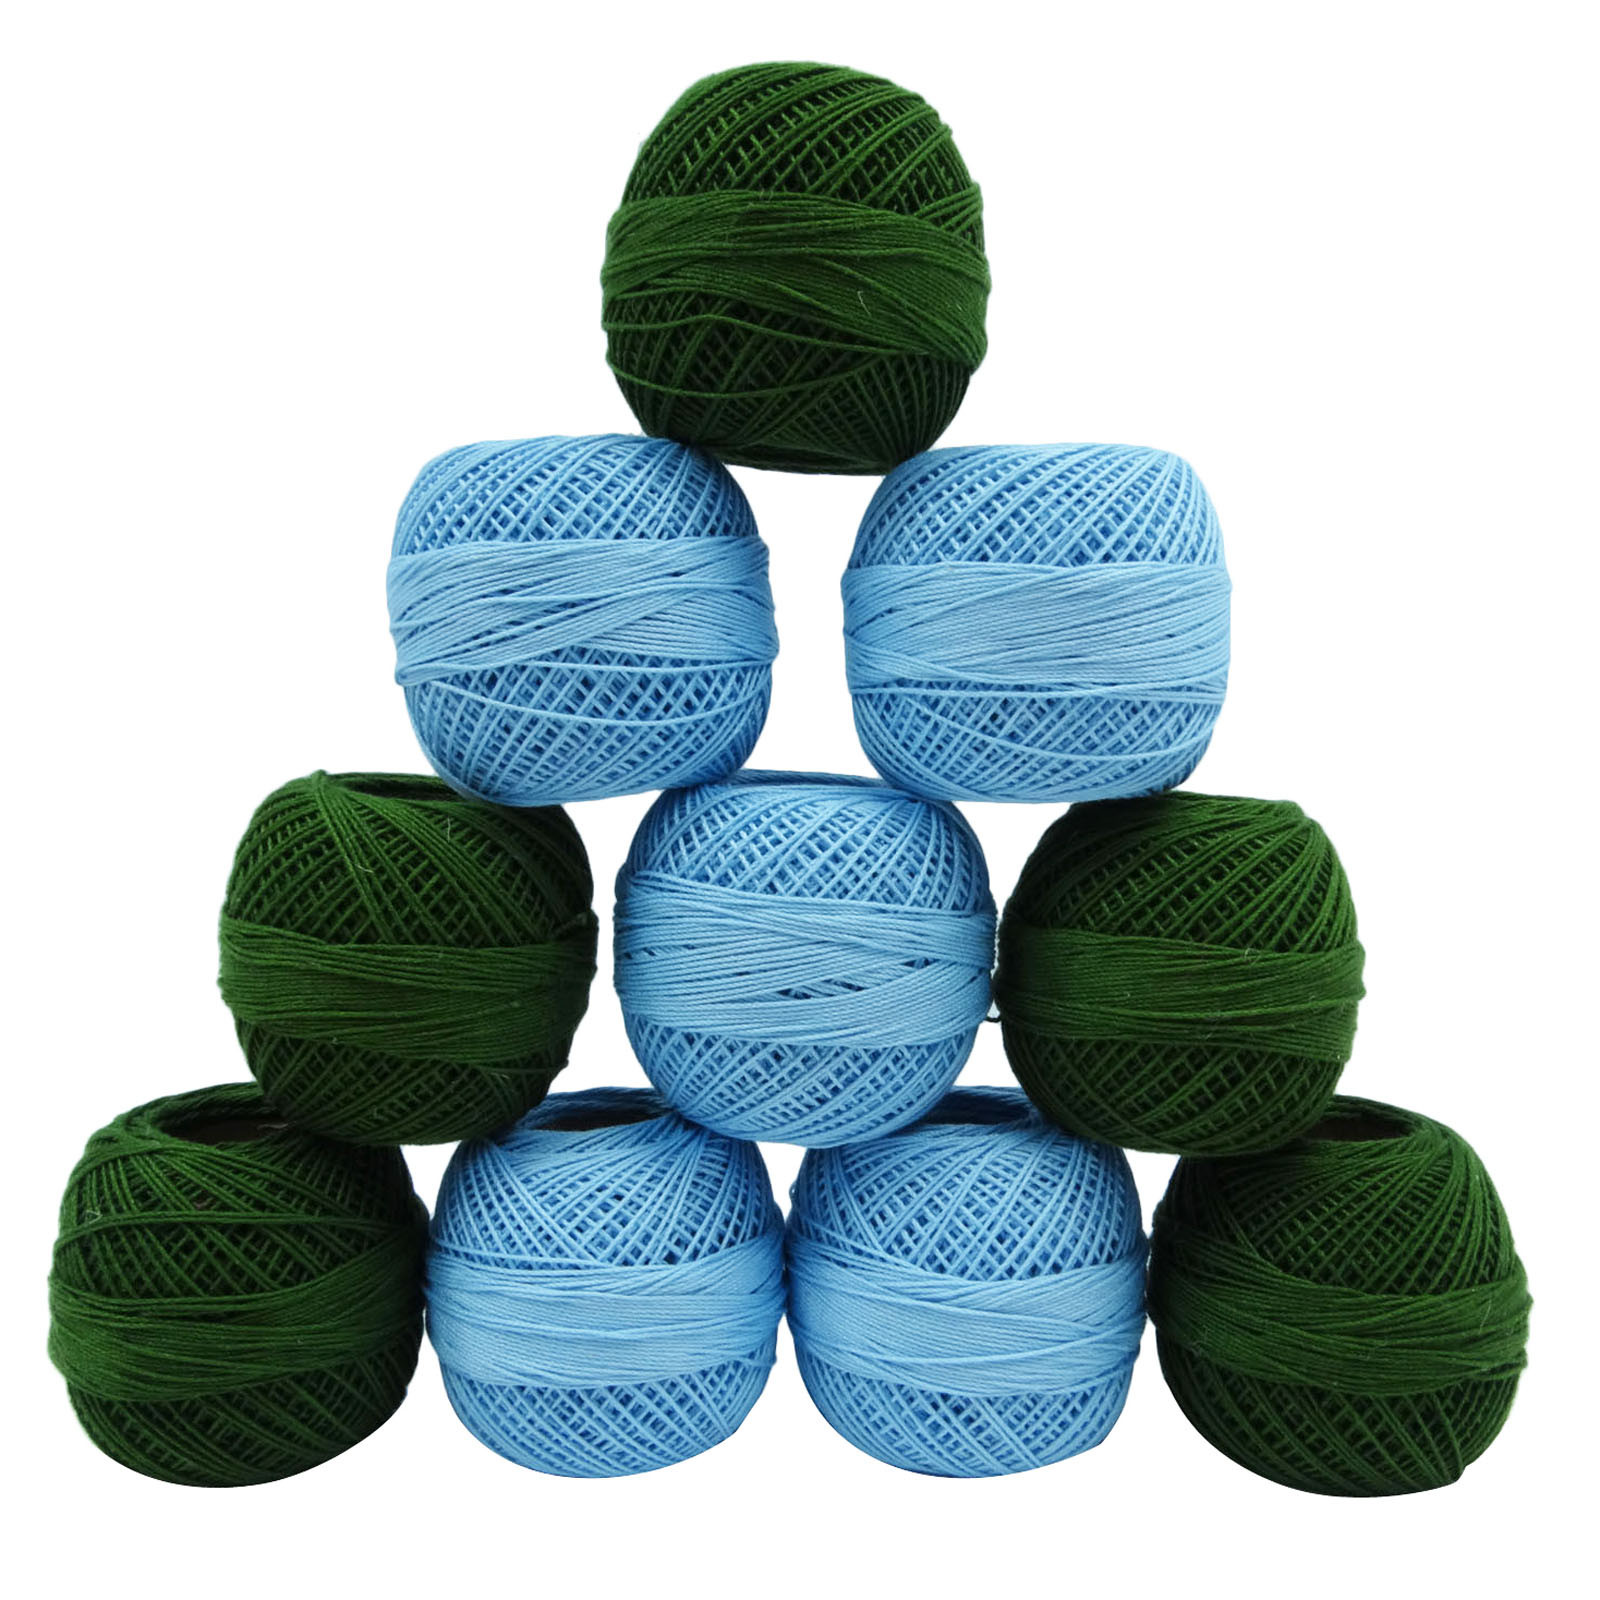 Lovely Green Cotton Mercerized Crochet Embroidery Knitting Skein Crochet Cotton Thread Of New 50 Pics Crochet Cotton Thread